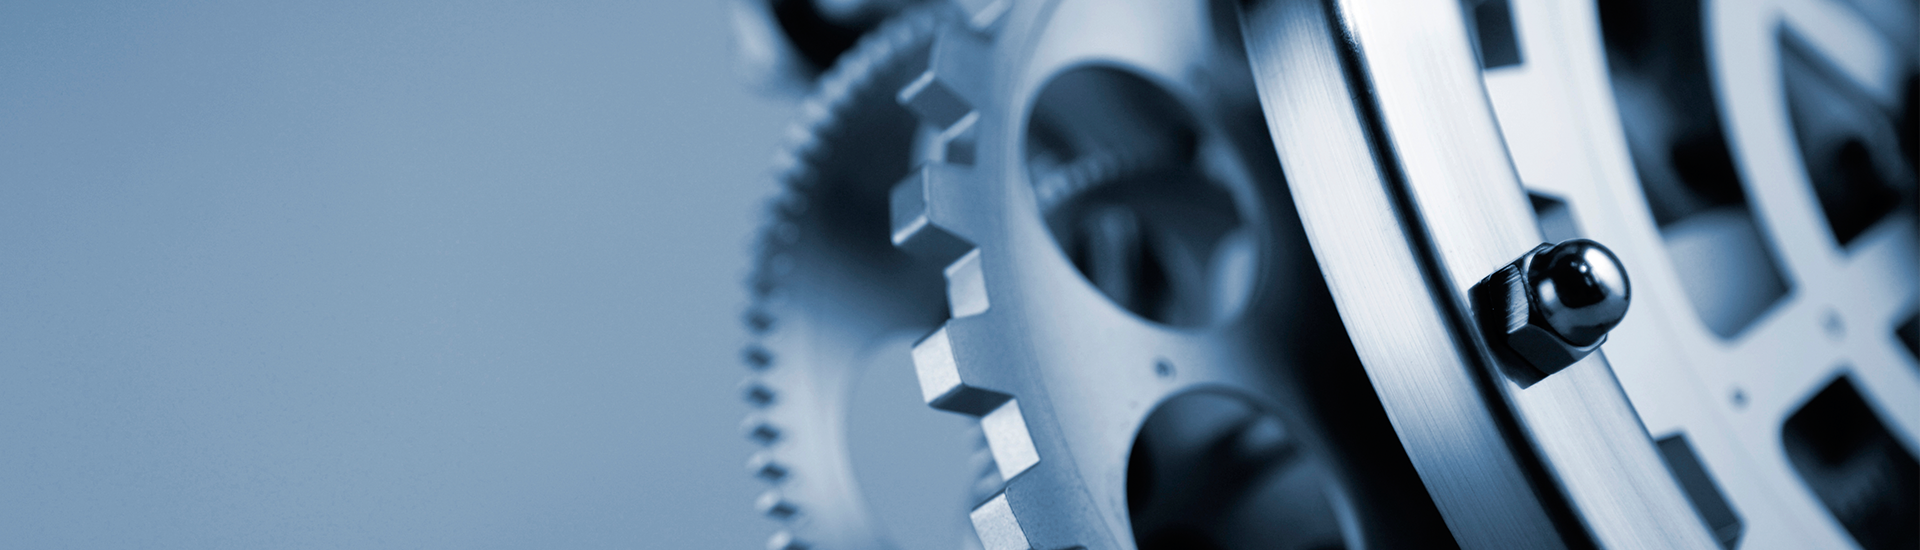 Industrial Machinery & Components | Westernacher Consulting